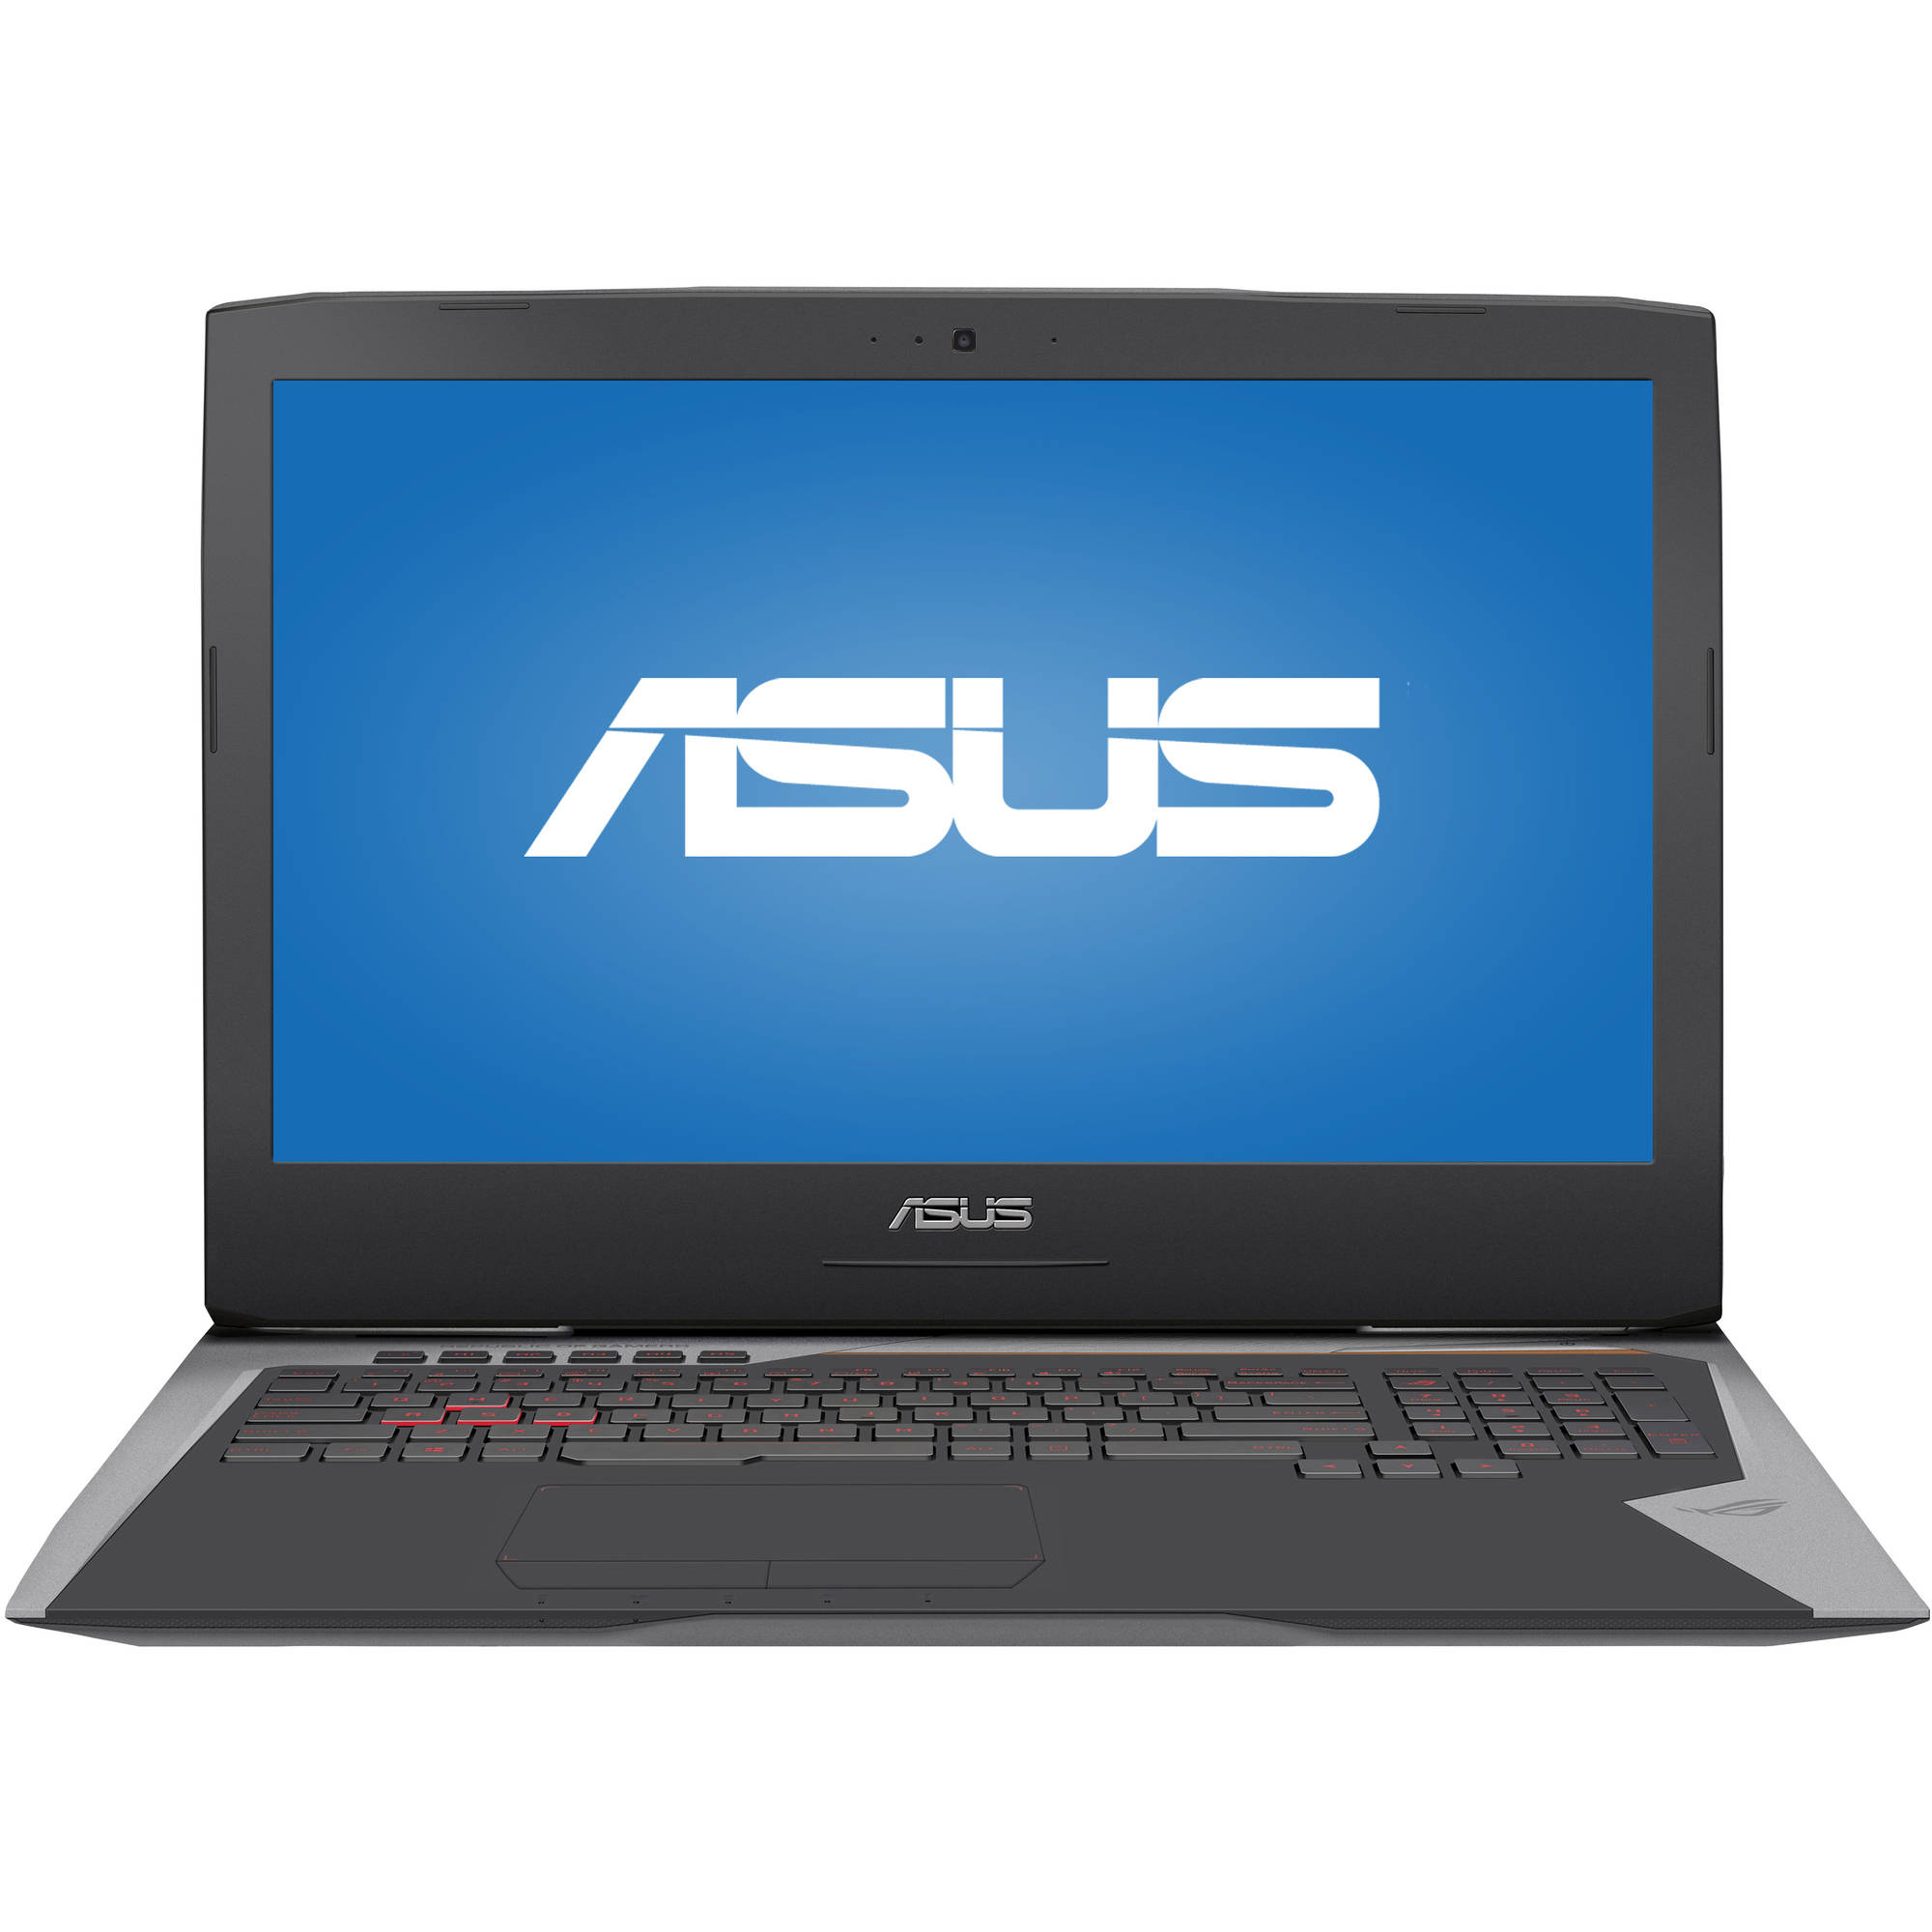 "ASUS ROG G752VSXB72KOC 17.3"" Gaming Laptop, Windows 10, Intel Core i7-6820HK Processor, 32GB RAM, 256GB Solid State... by ASUS"